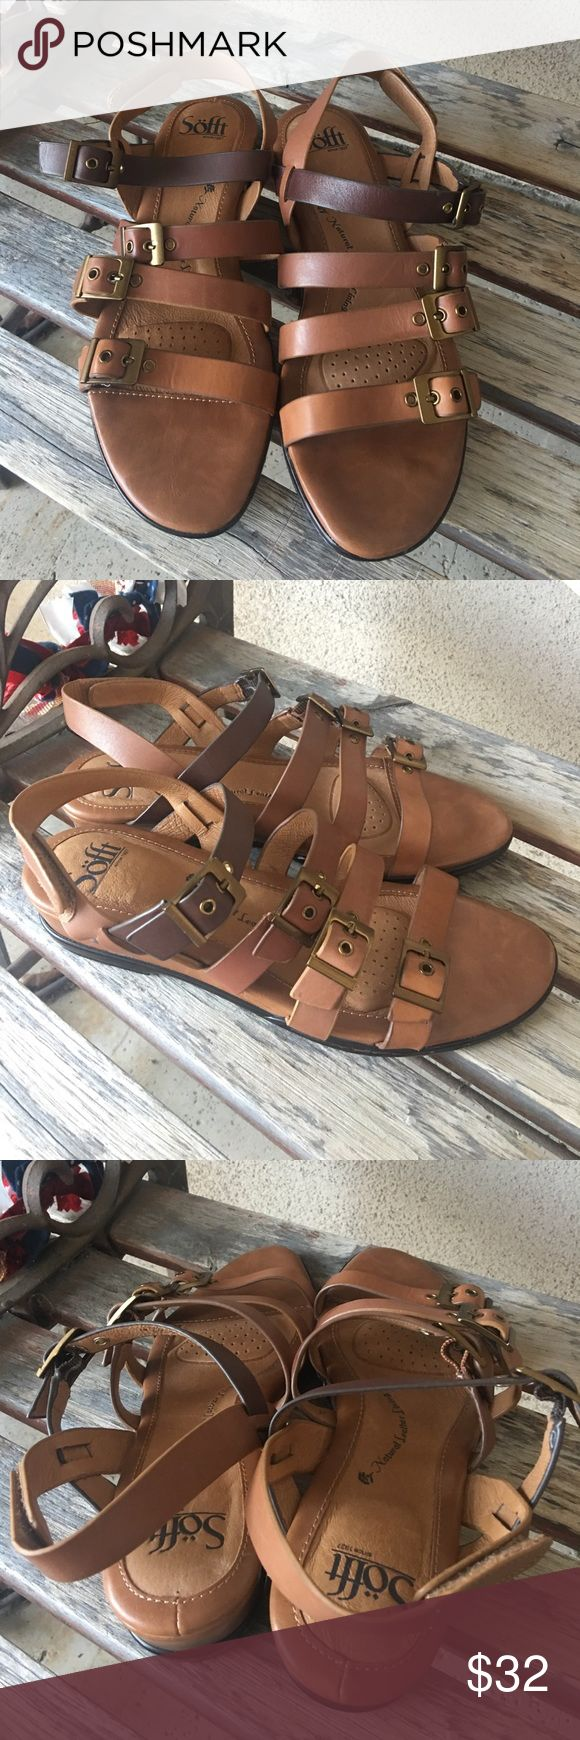 Sofft brown leather ombré buckle sandals size 8 Sofft brown leather ombré buckle sandals size 8.  Velcro backing.  New without box. Final price. No offers please❤️ Sofft Shoes Sandals